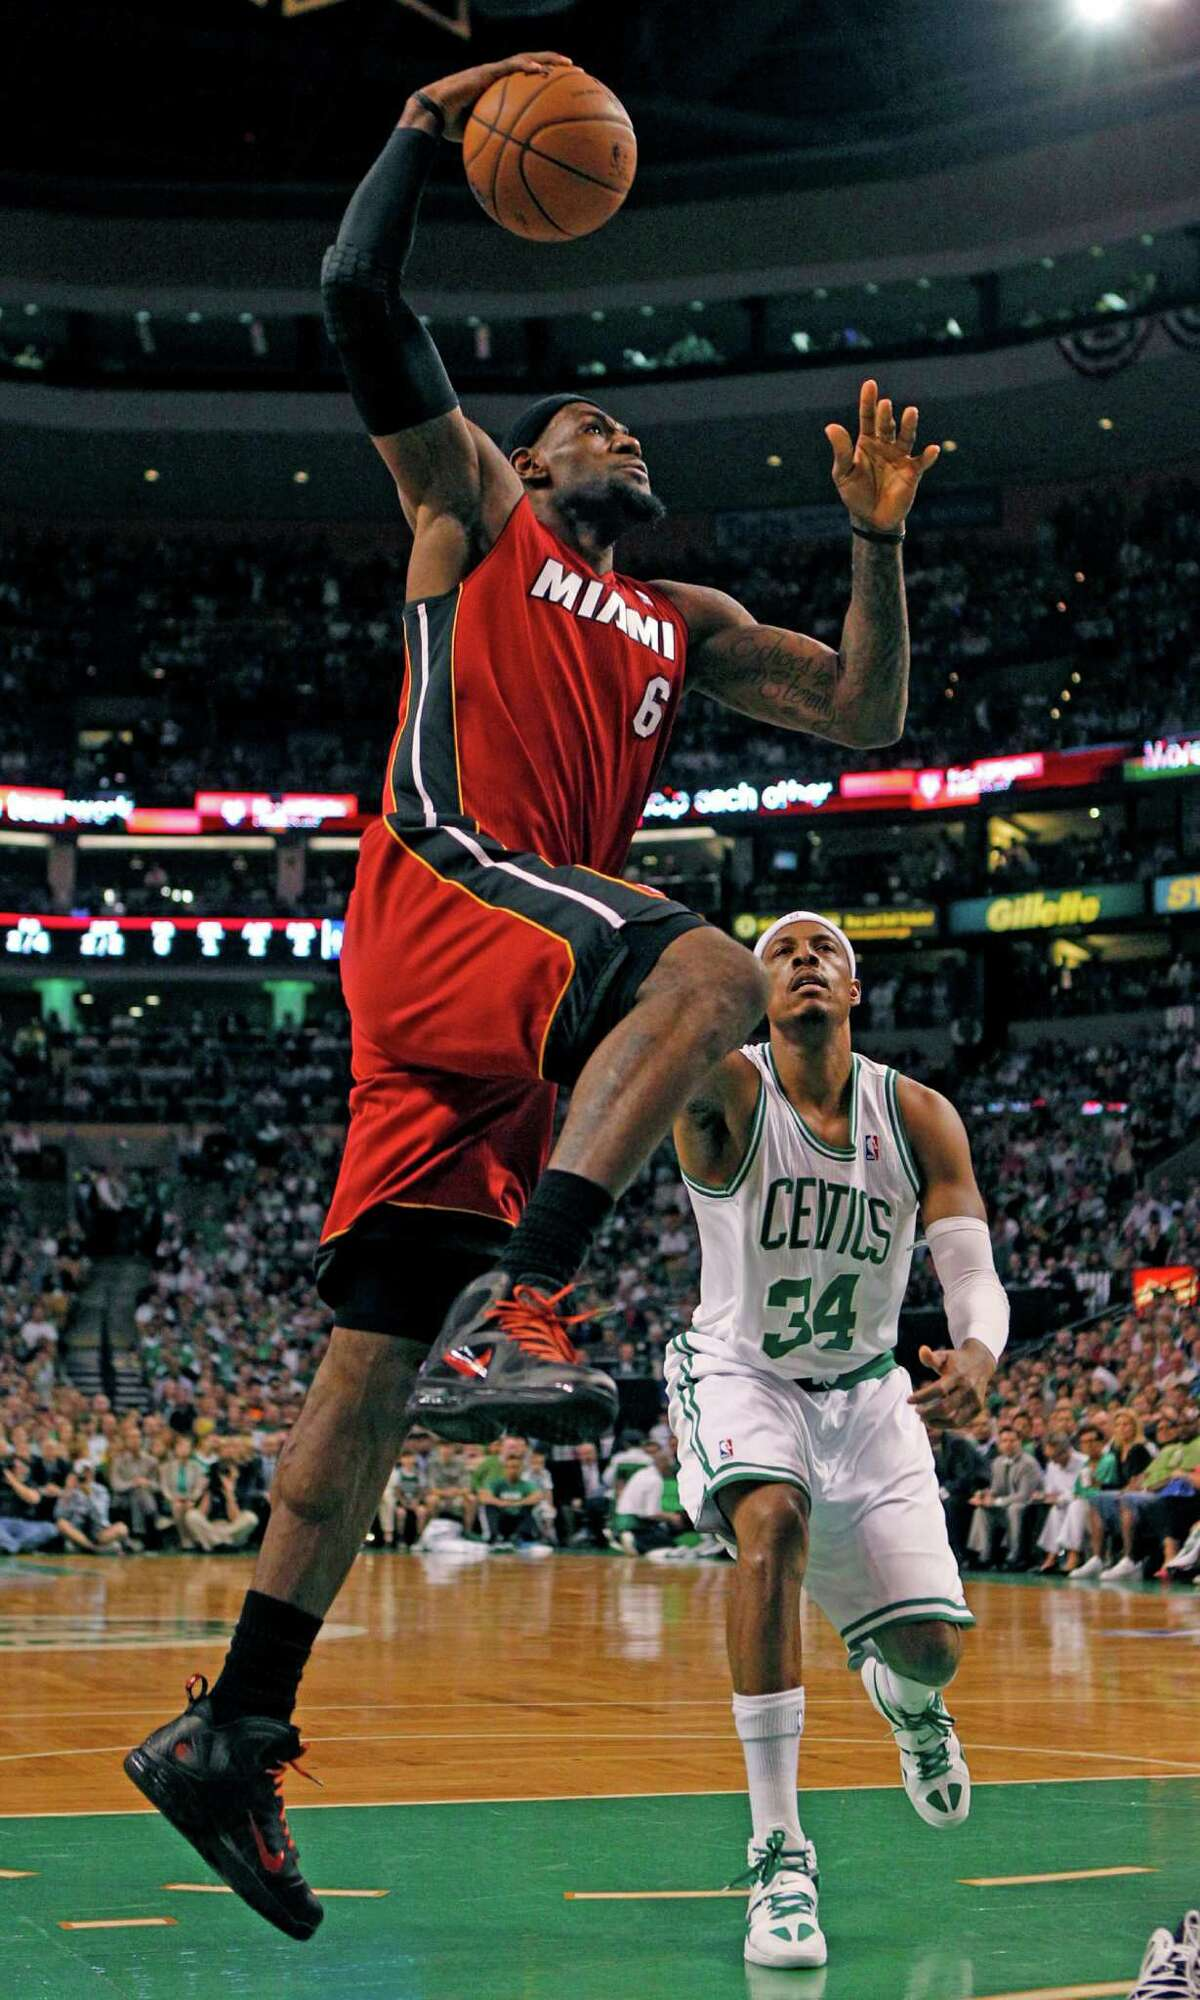 Miami Heat forward LeBron James (6) shoots over Boston Celtics forward Paul Pierce (34) during the first half in Game 6 of the NBA basketball Eastern Conference finals, Thursday, June 7, 2012, in Boston. (AP Photo/The Miami Herald, Charles Trainor Jr.) MAGS OUT